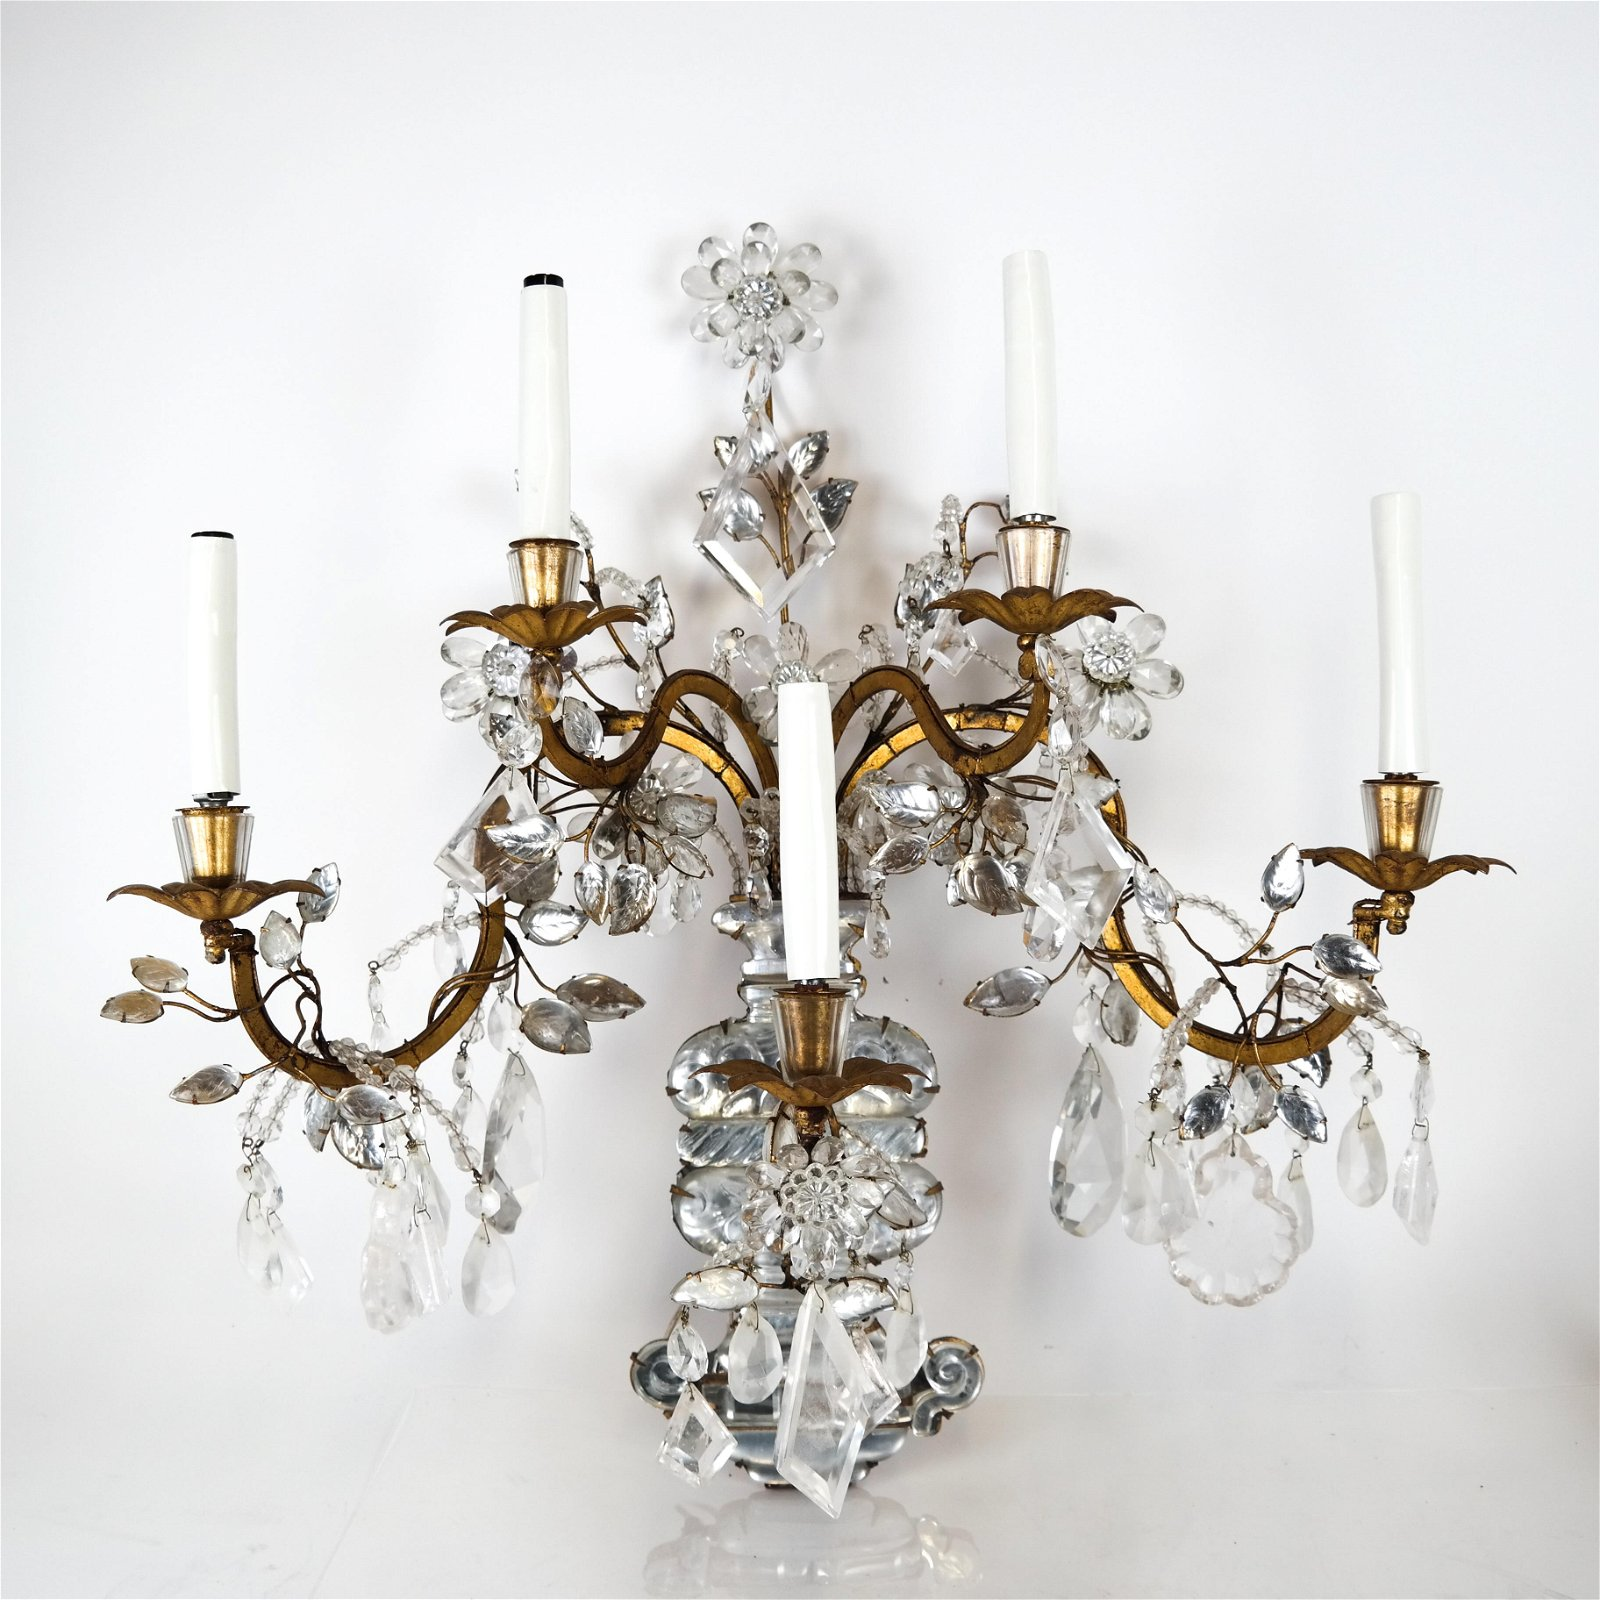 20th C. Modern Bagues Single Sconce